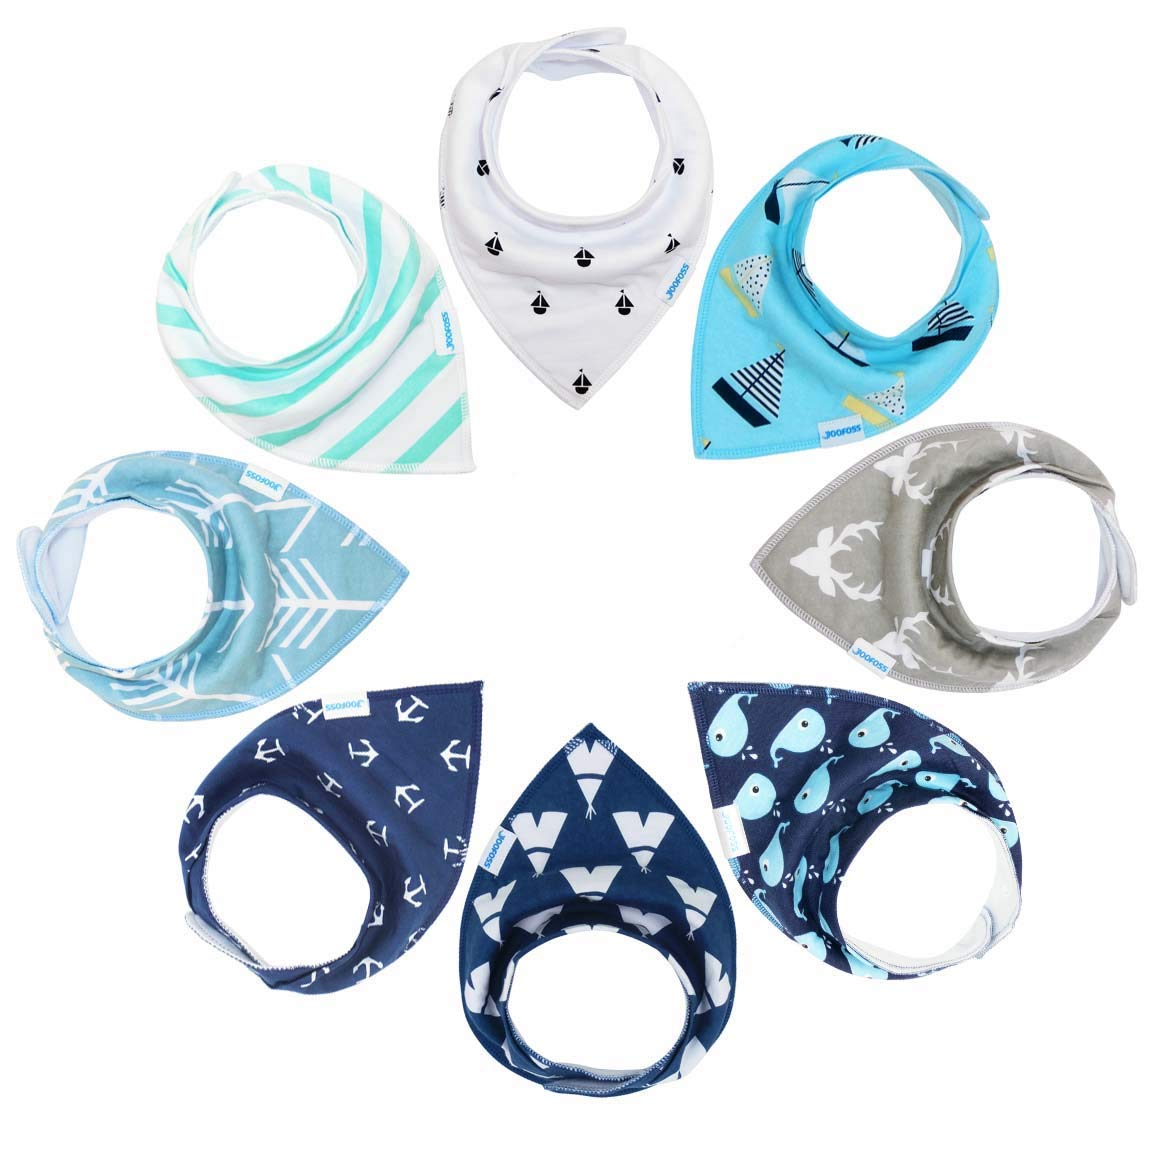 Baby Bandana Drool Bibs for Boys Girls 8 Pack for Teething and Drooling by YOOFOSS